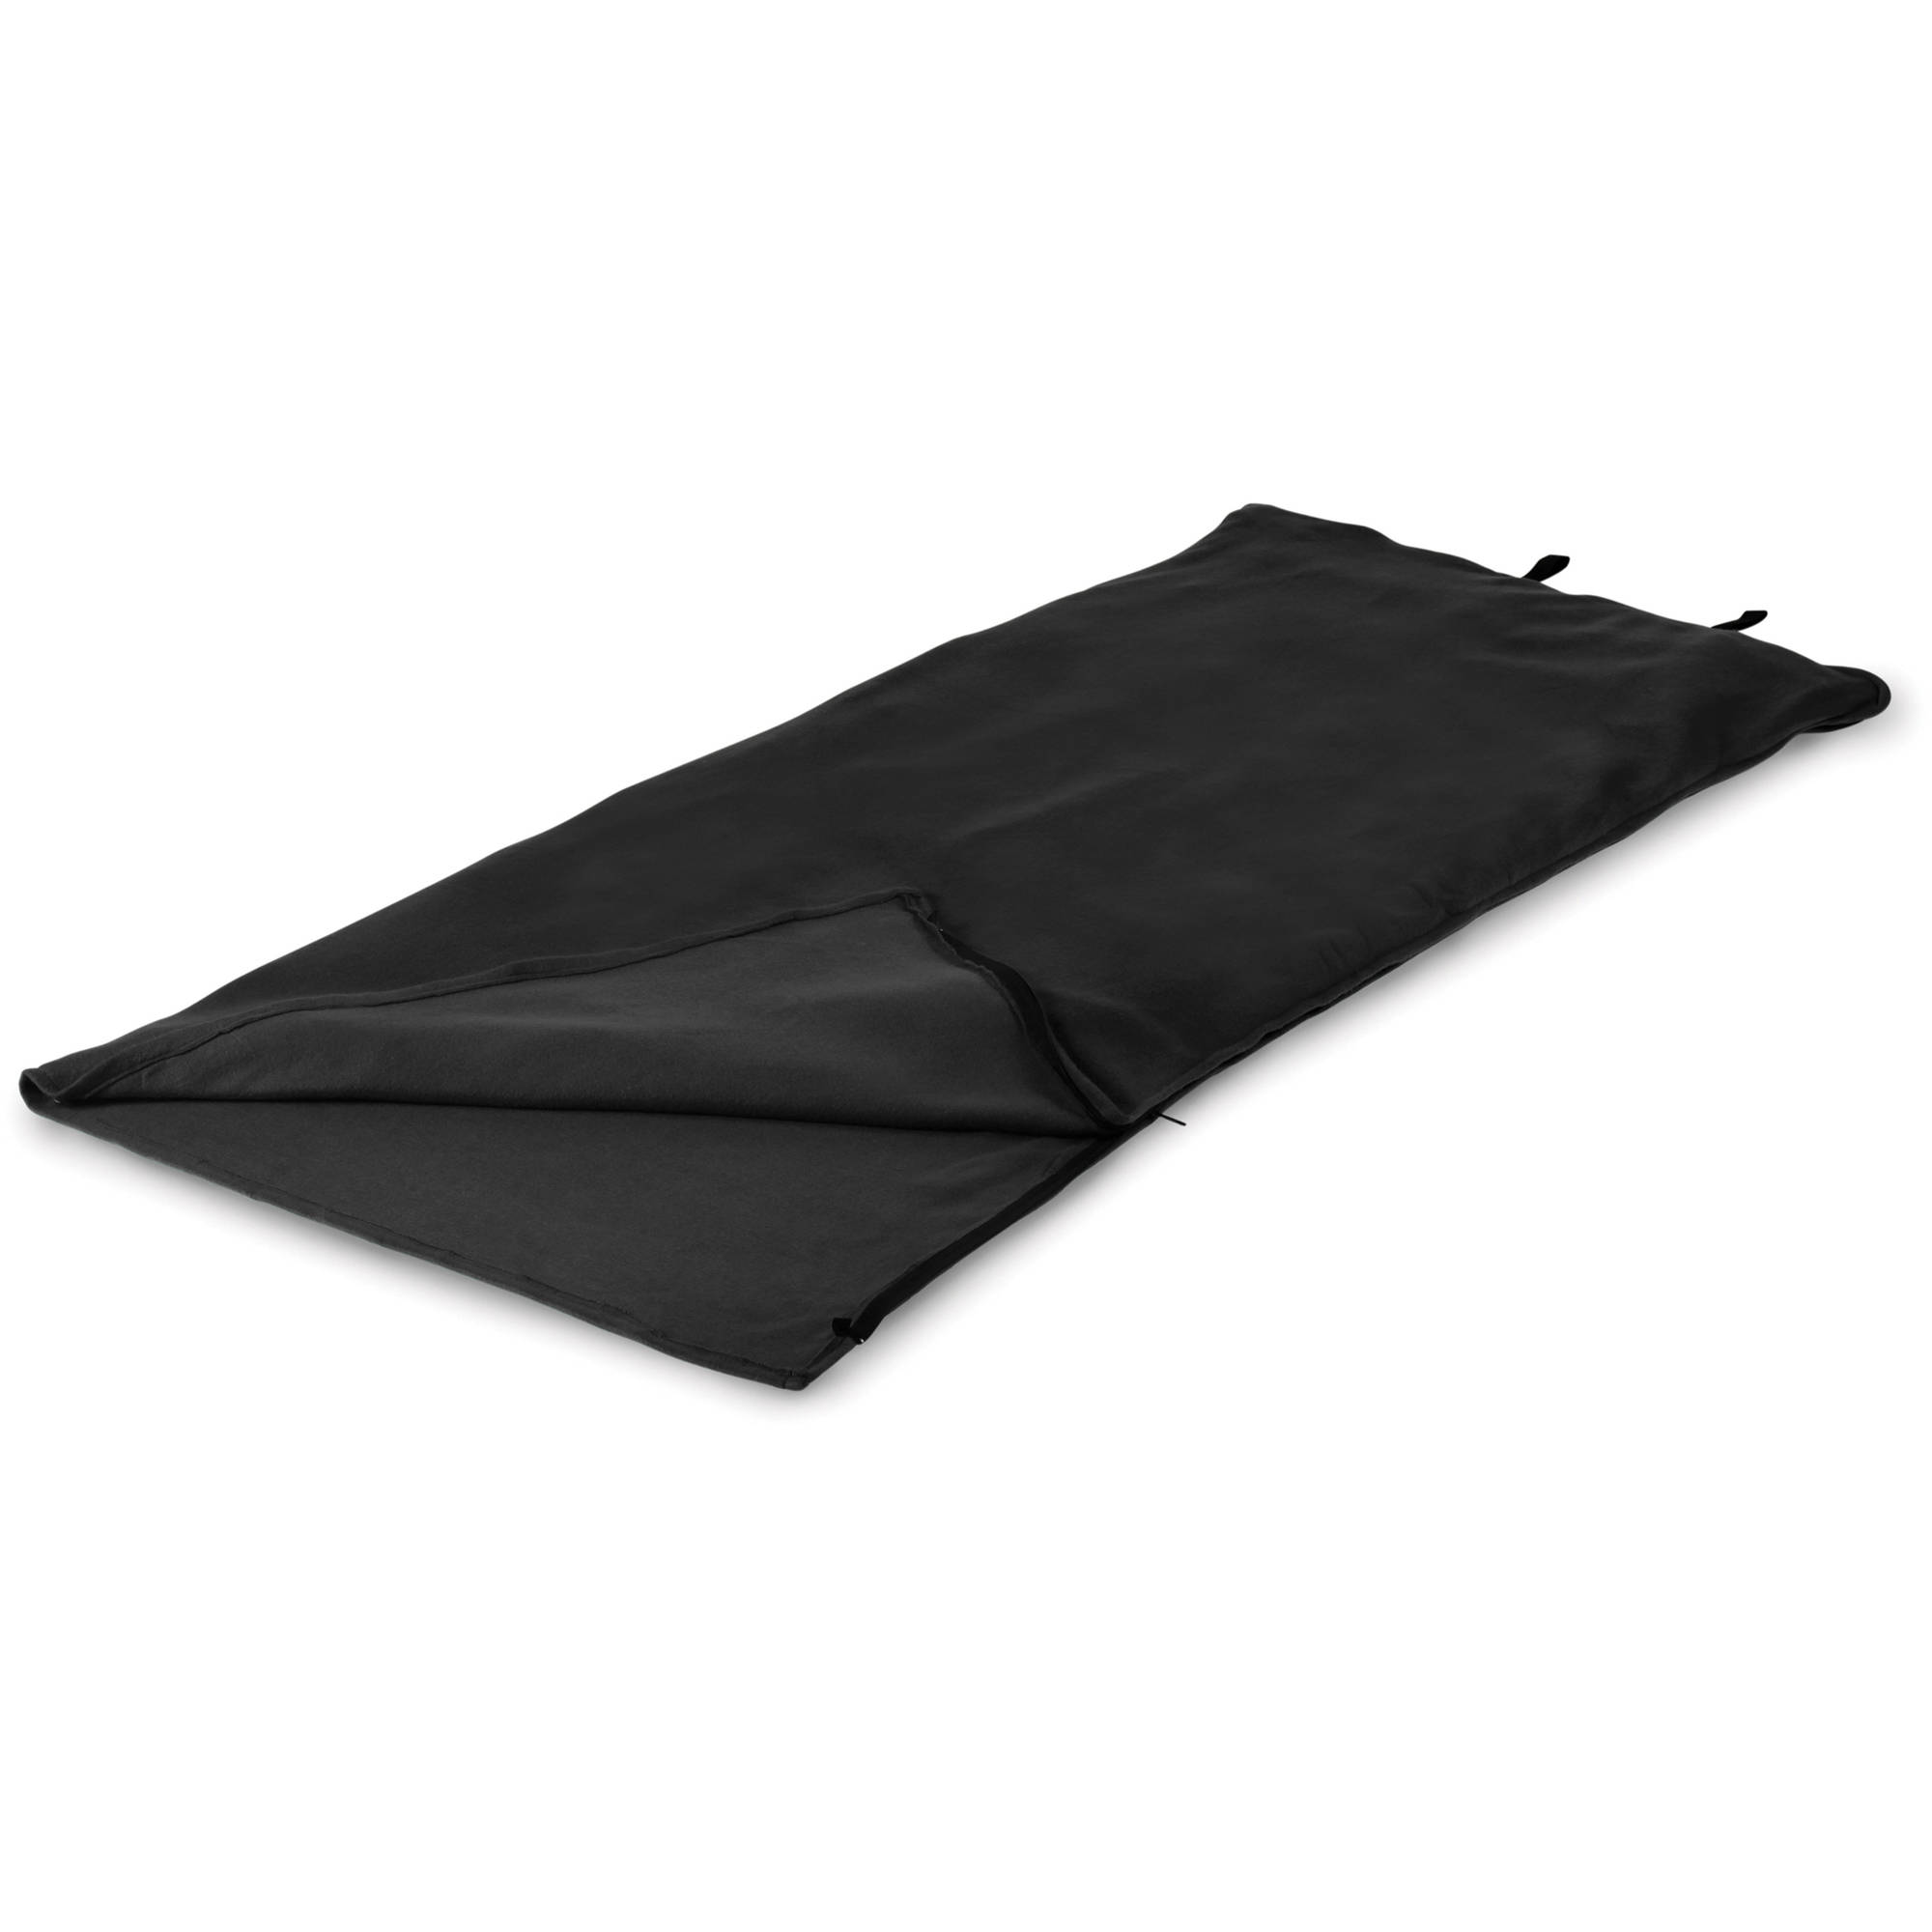 Stansport Fleece Sleeping Bag Black 32 in x 75 in by Stansport